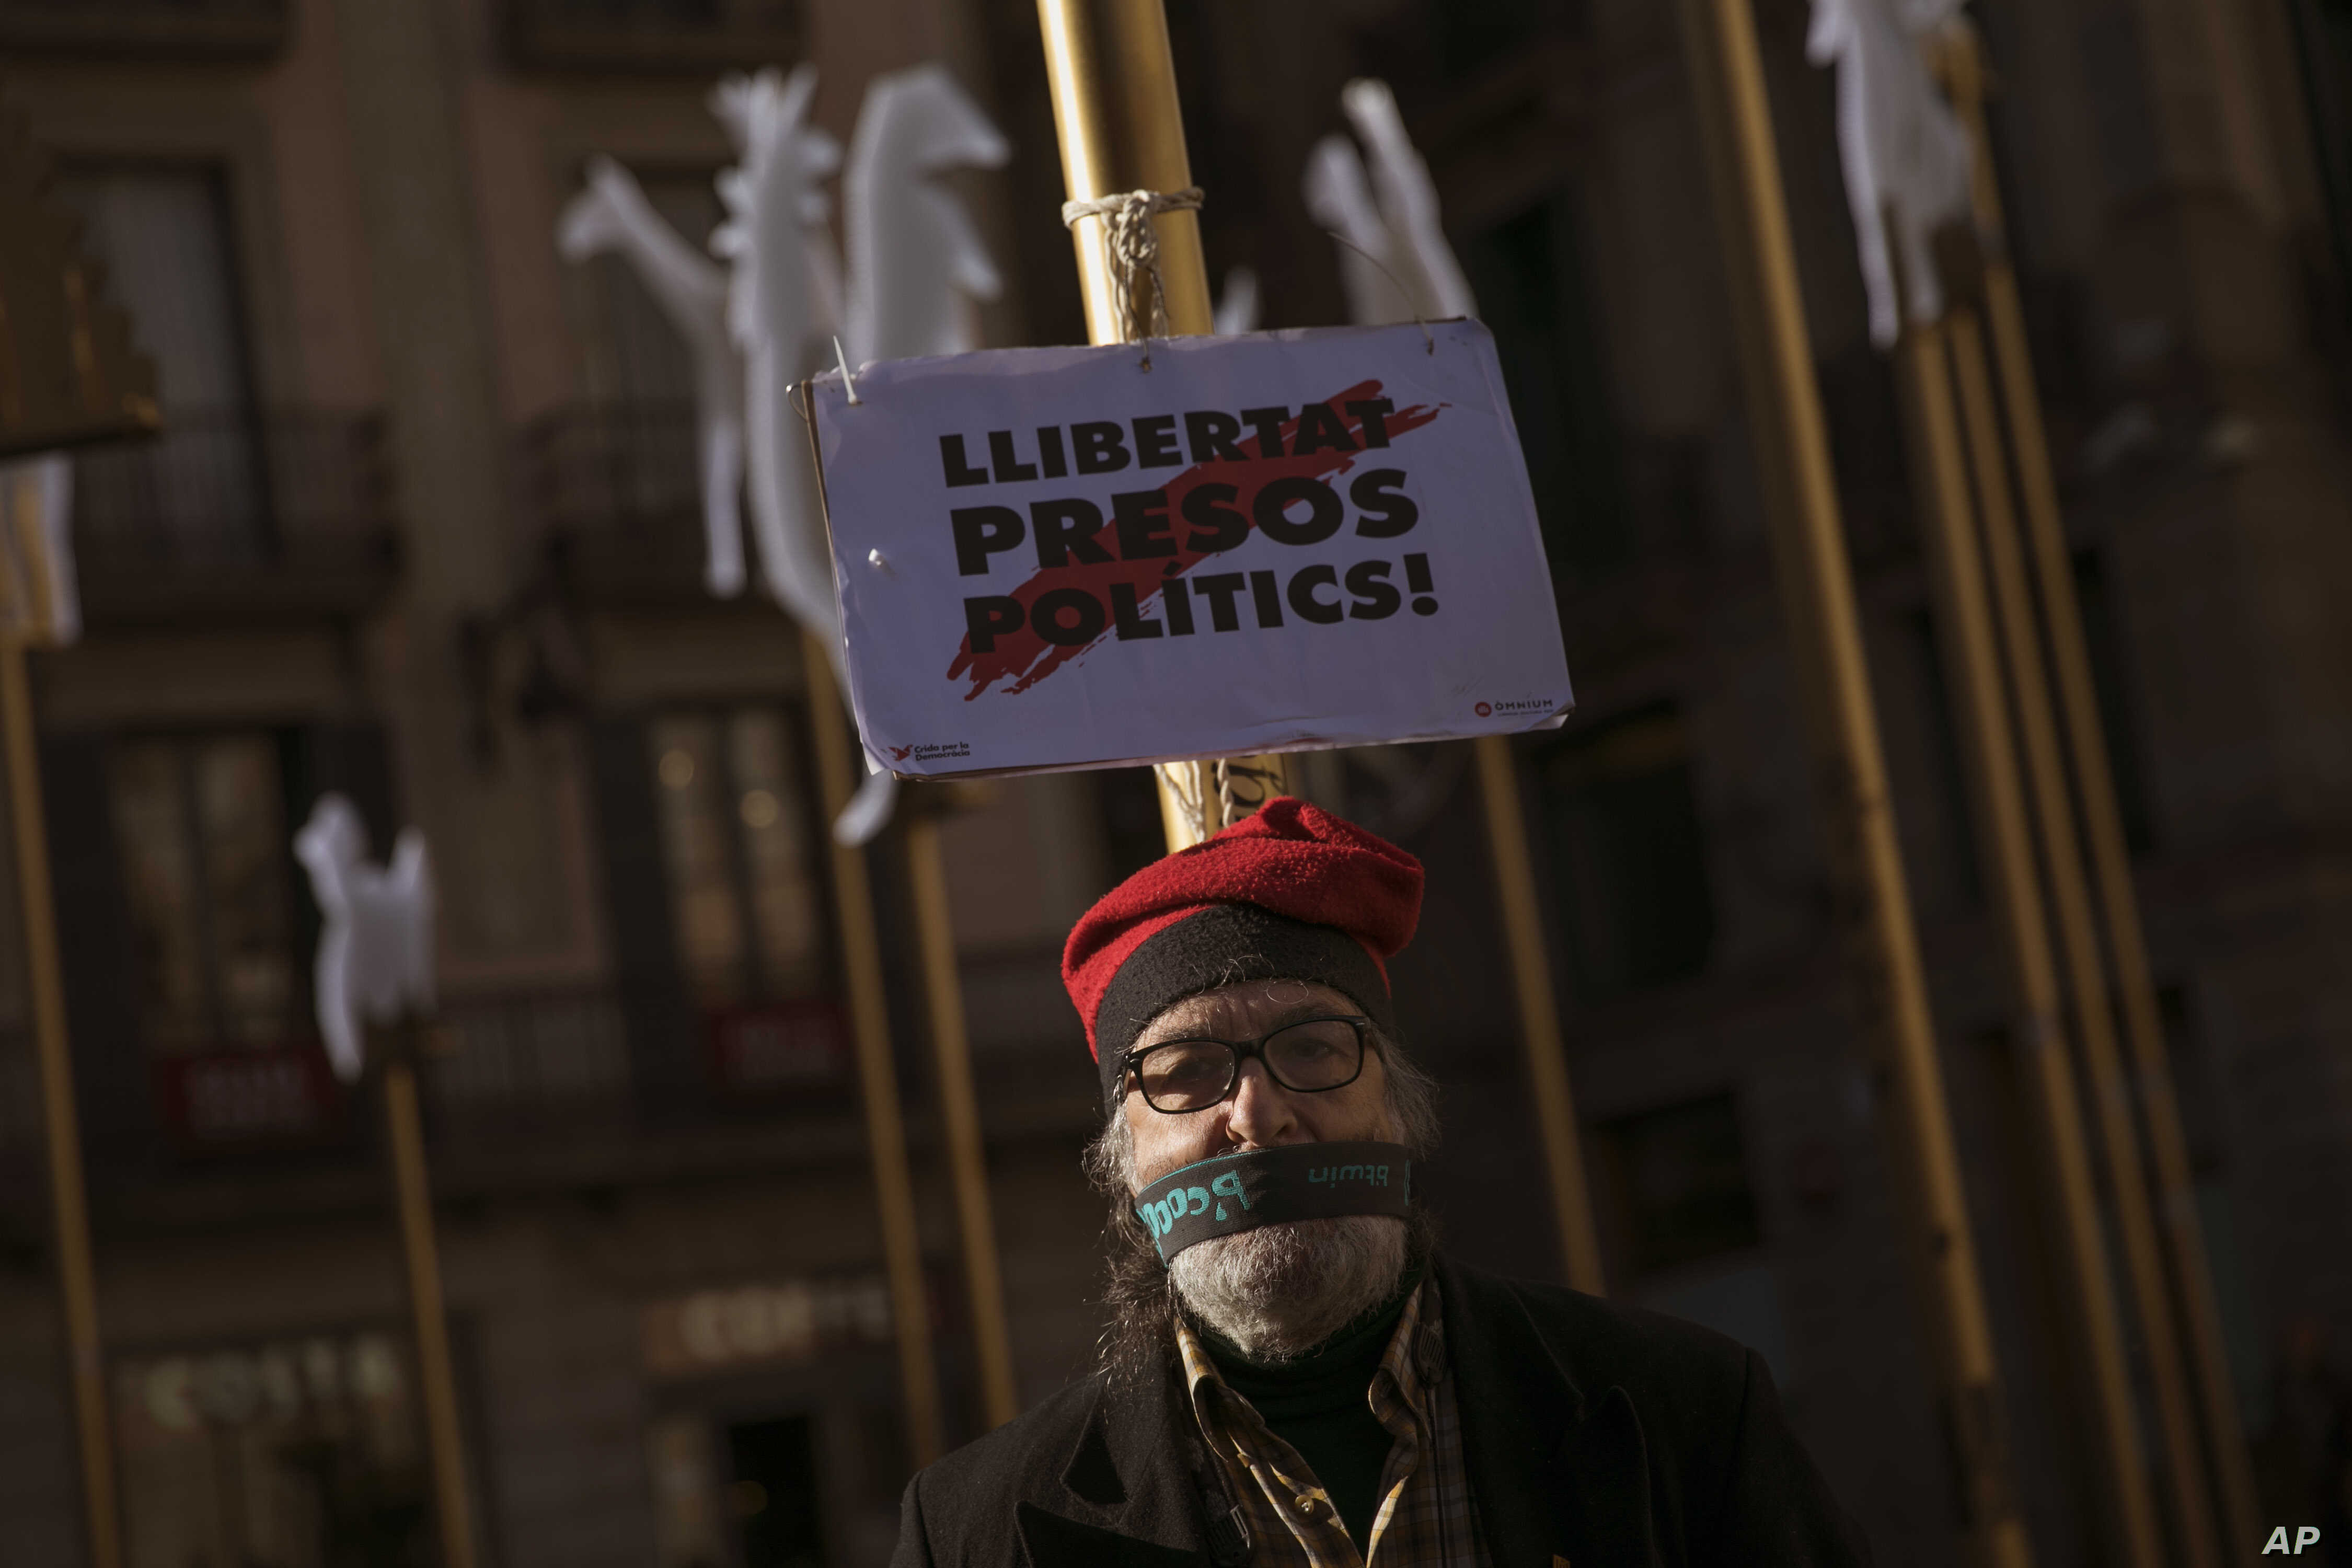 """A man stands next to a banner reading in Catalan: """"Freedom for Political Prisoners"""", in support of Catalonia politicians who have been jailed on charges of sedition in Barcelona, Spain, Dec. 19, 2017."""